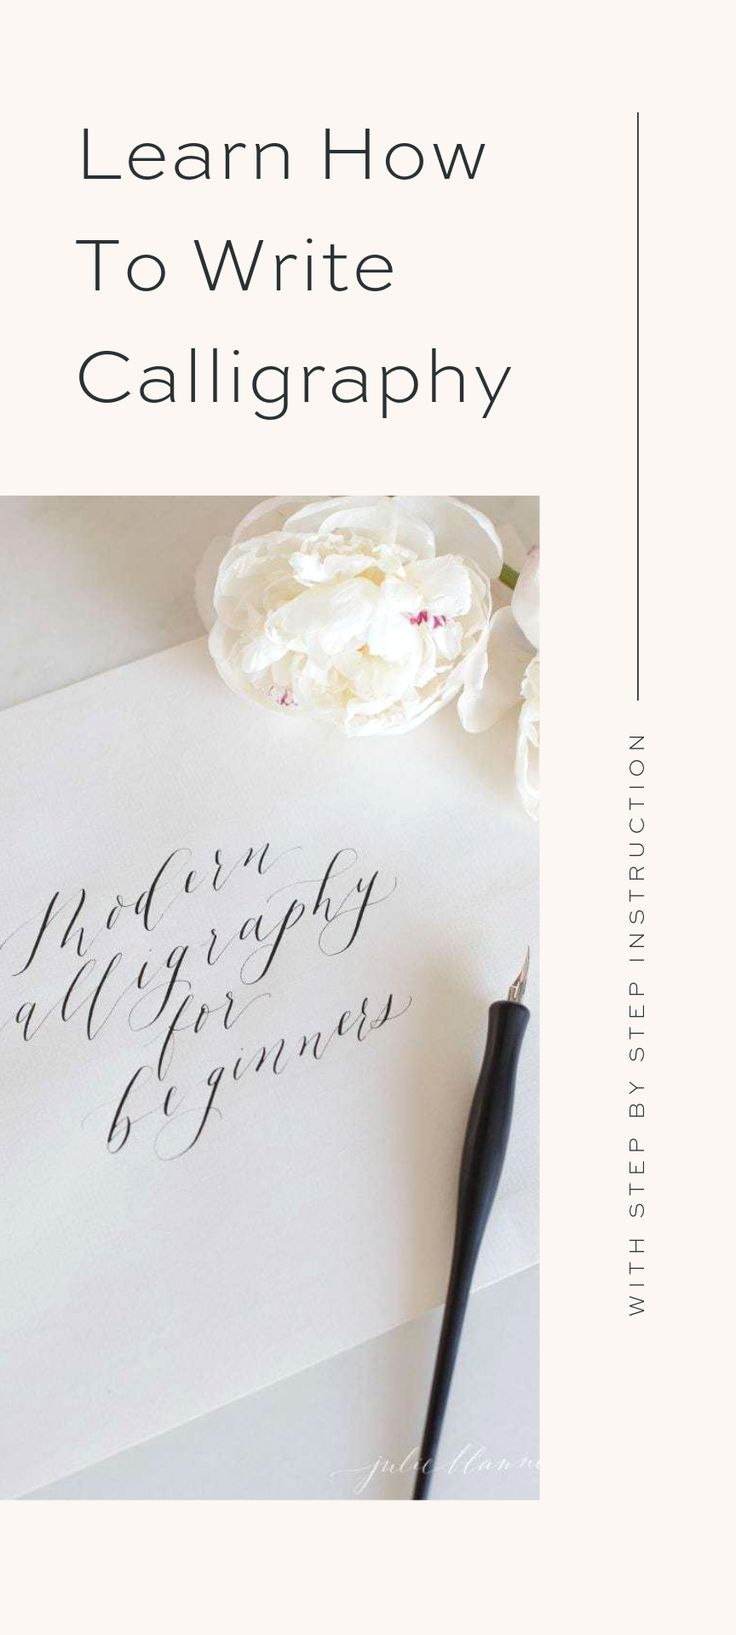 Learn the basics of how to write calligraphy starting with how to